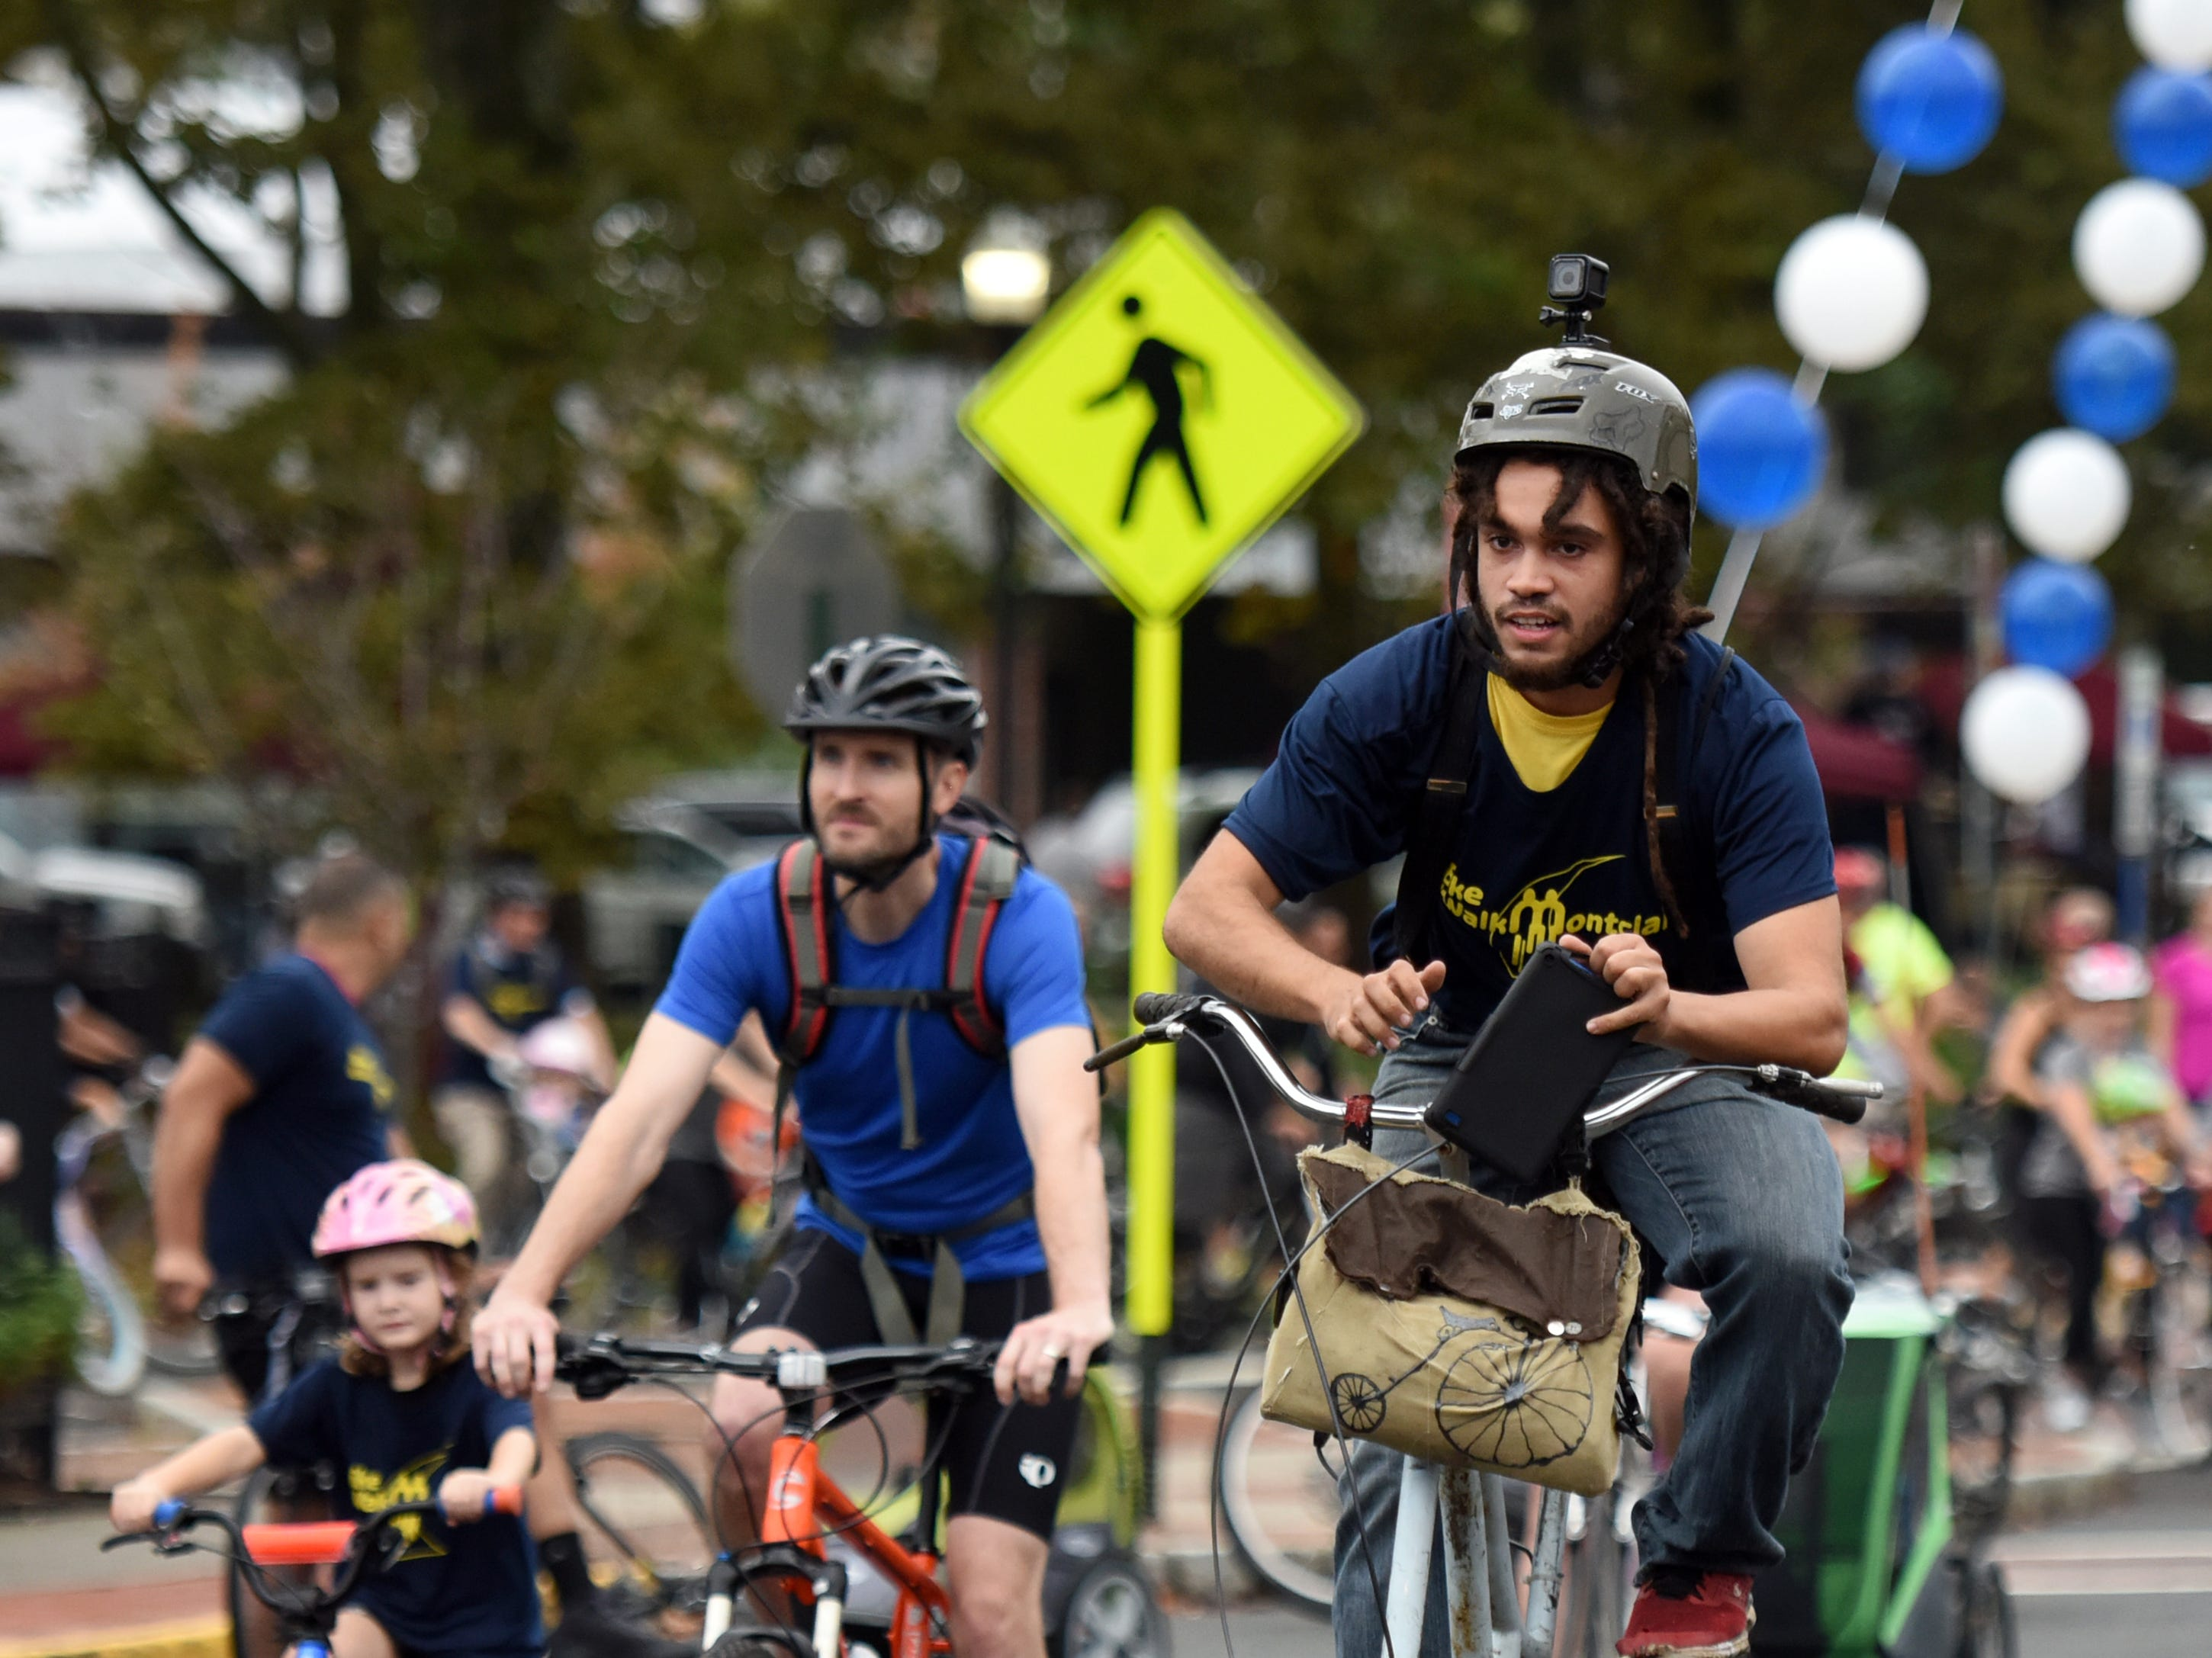 The Tour de Montclair a family-friendly bike ride with 6- and 12- mile options was held on Sunday, October 7, 2018.